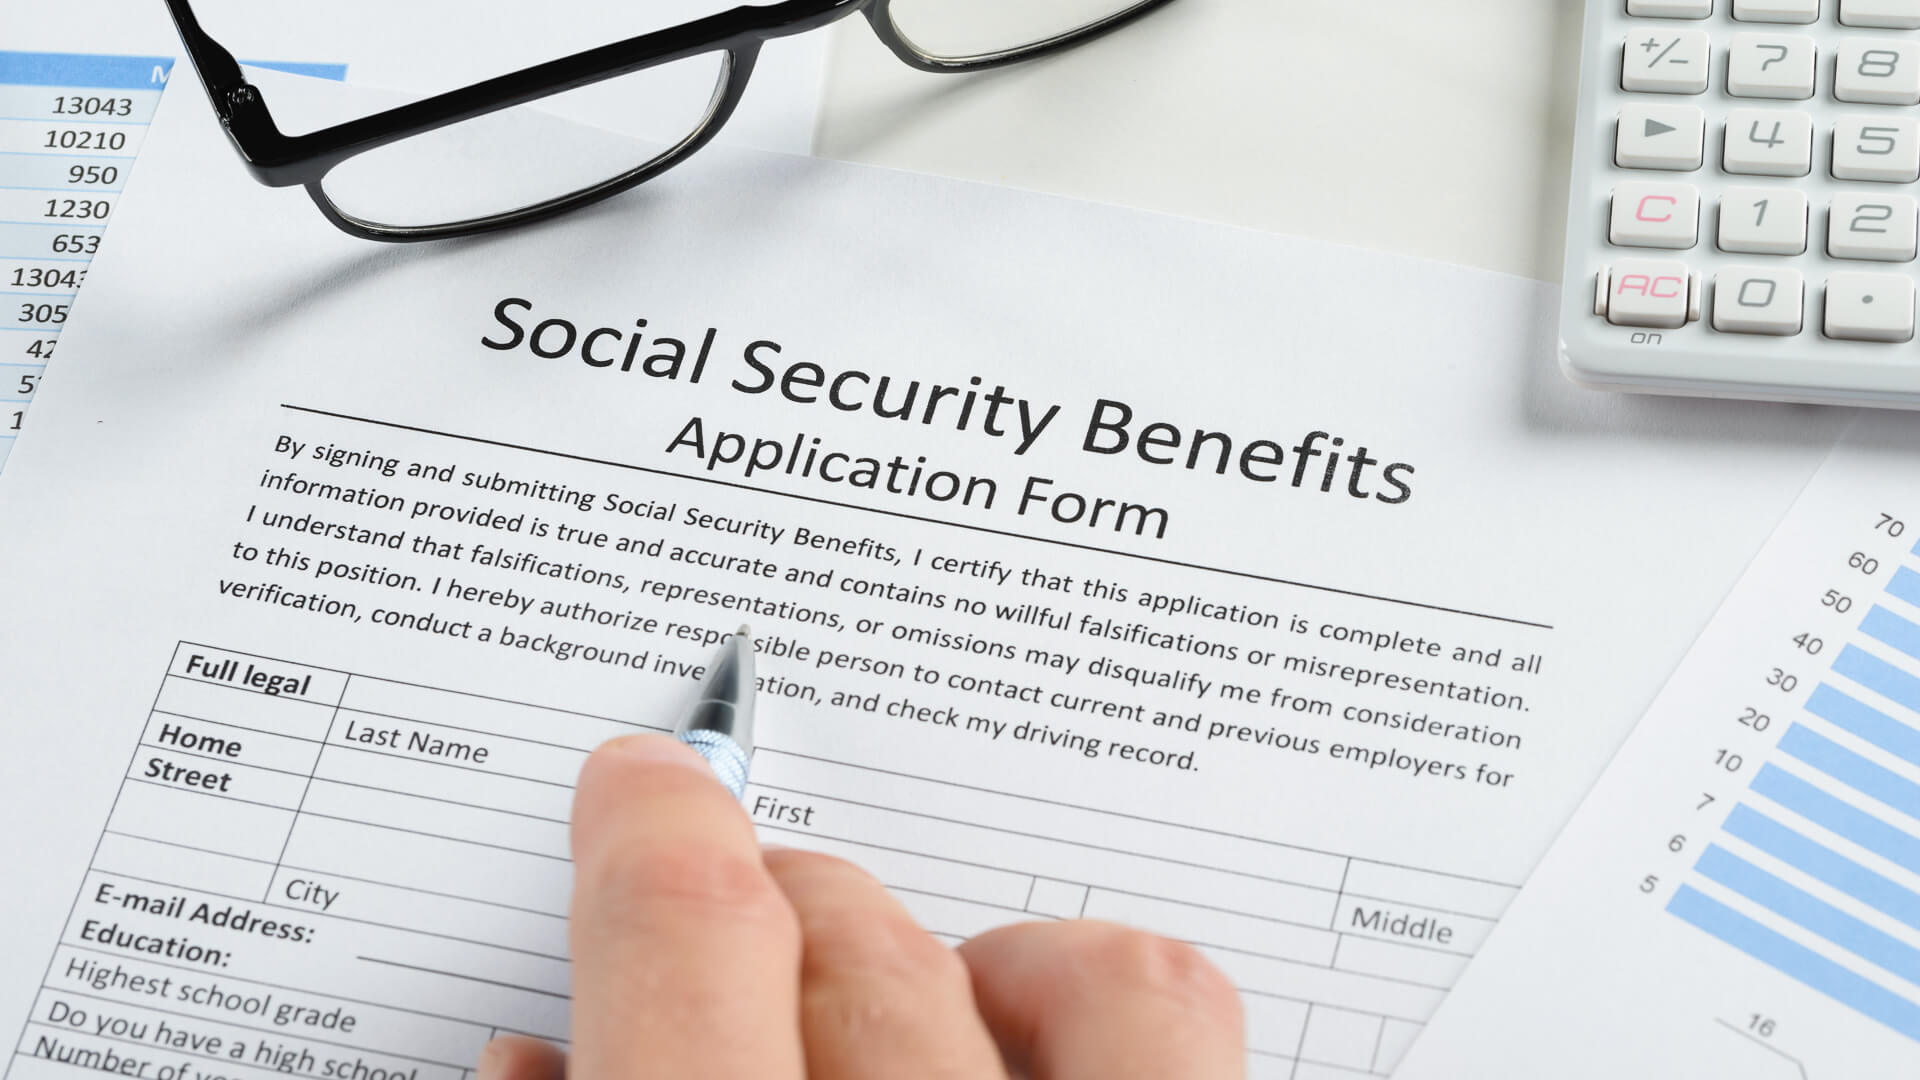 How Trump and Biden Would Handle the COVID-19 Social Security Crisis